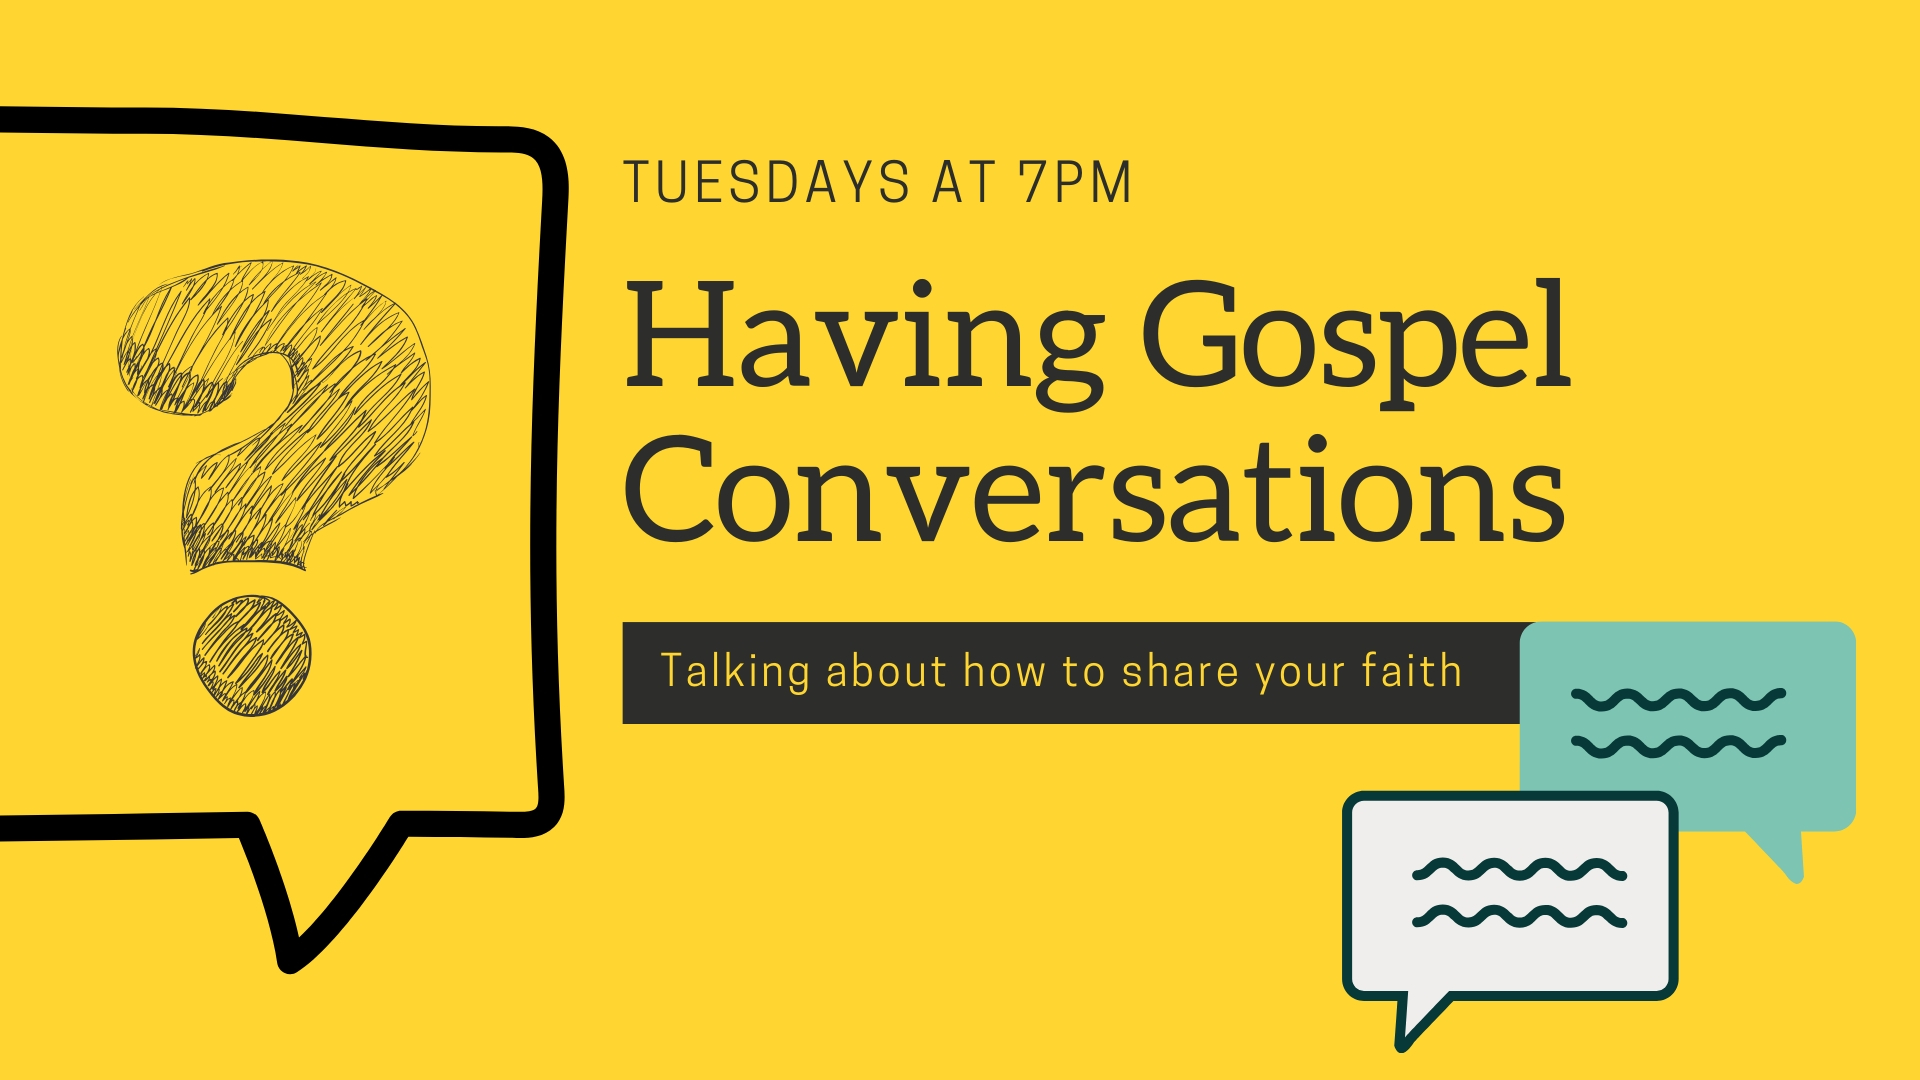 Having Gospel Conversations - Week 8 Image